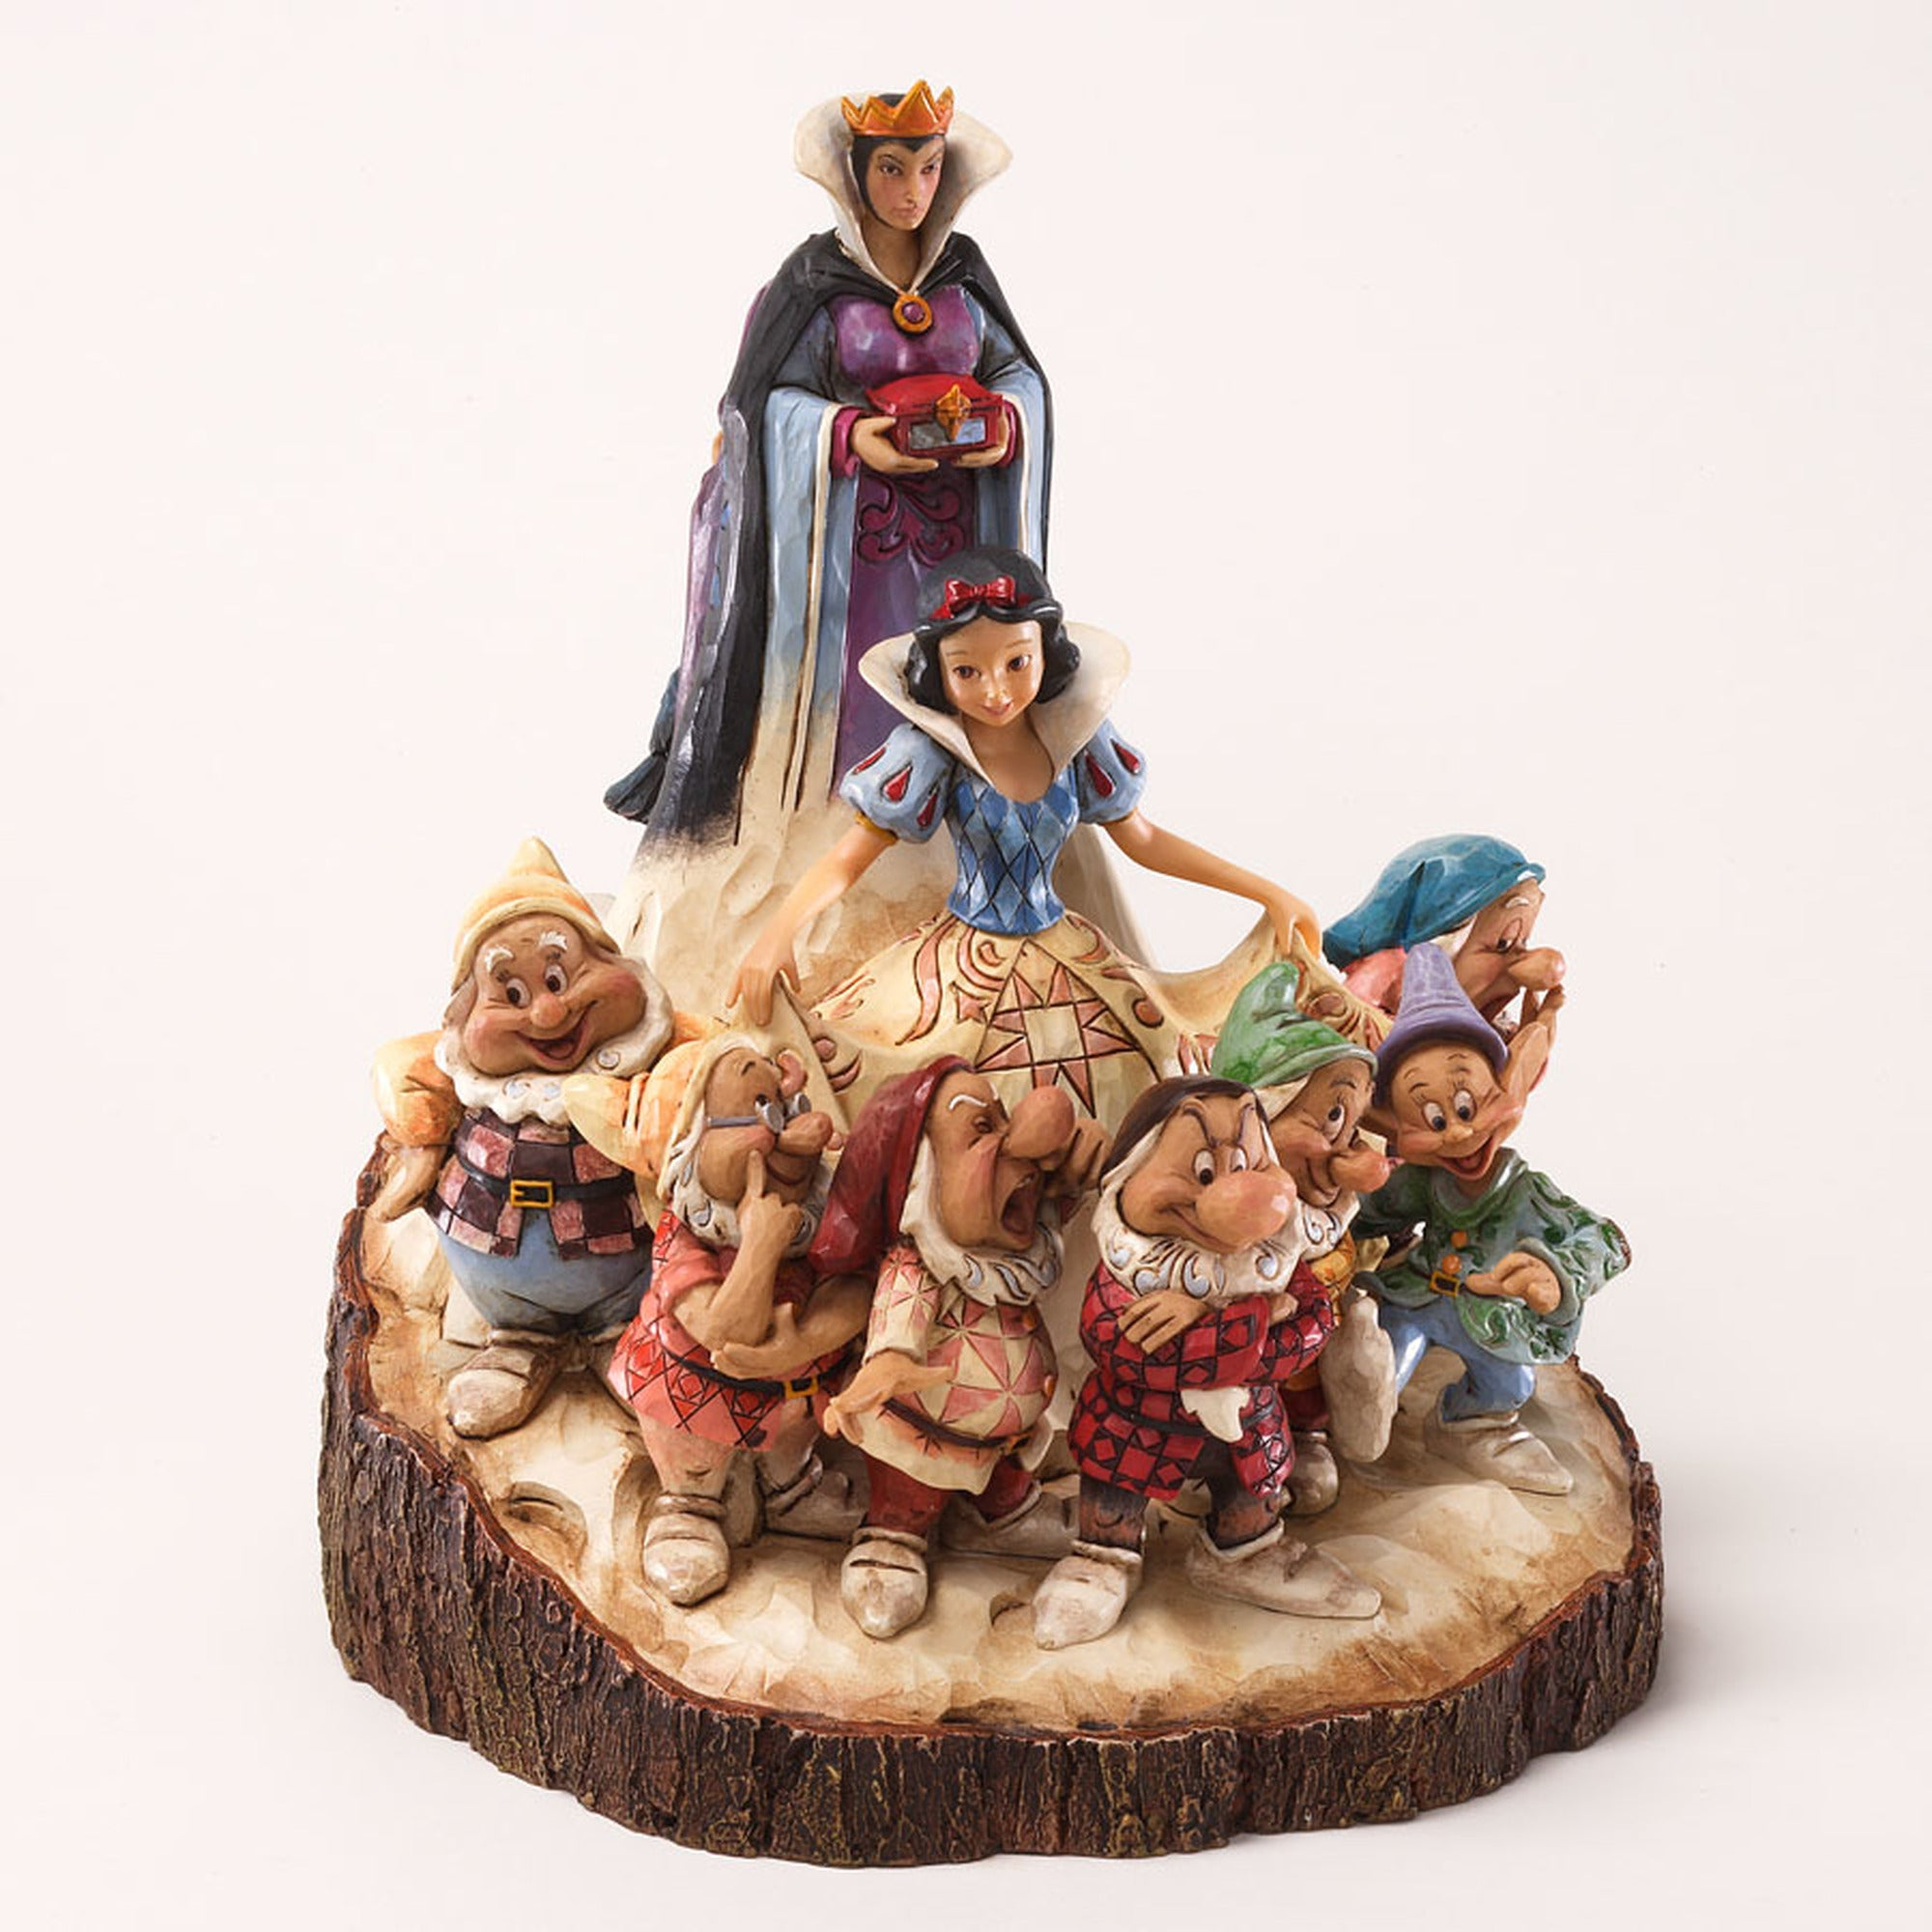 Snow White and the Seven Dwarves - Carved By Heart - Disney Traditions by Jim Shore